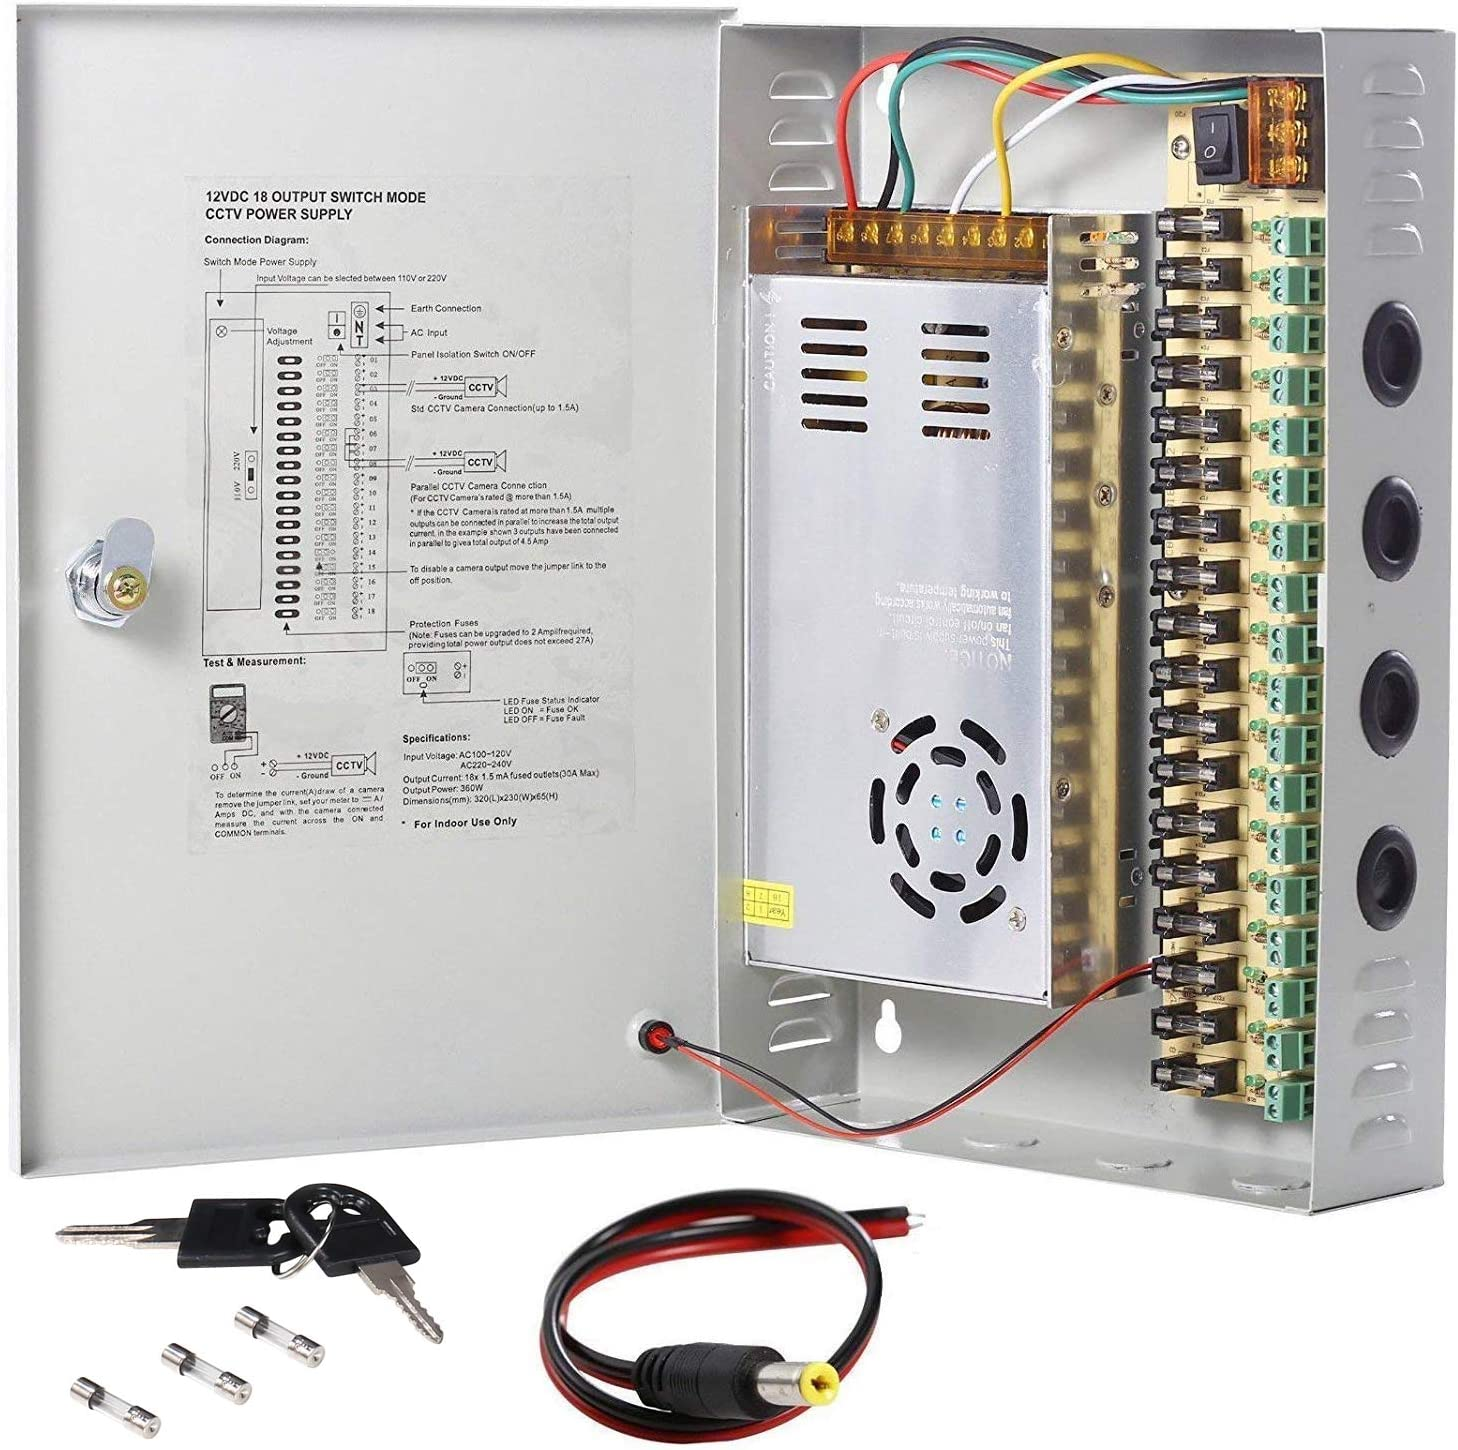 fuse distribution box main switch amazon com uhppote 18 channel power supply switch box cctv camera  power supply switch box cctv camera